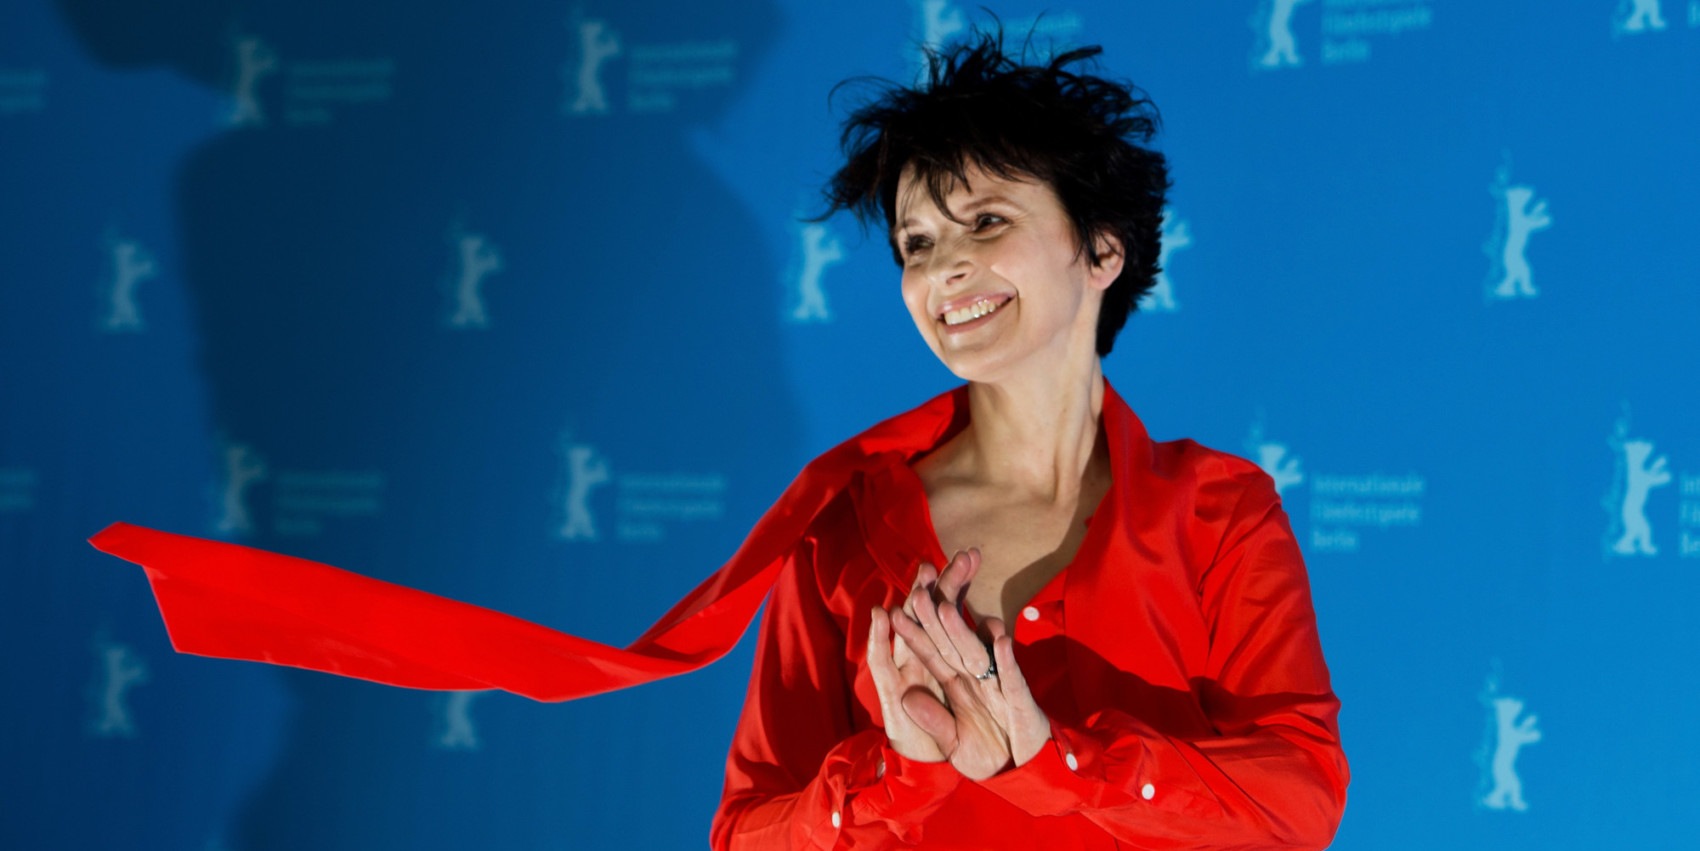 "(FILES) In this file photo taken on February 12, 2013 French actress Juliette Binoche poses during a photocall for the premiere of the film ""Camille Claudel 1915"" presented in the Berlinale Competition of the 63rd Berlin International Film Festival in Berlin. - Juliette Binoche, one of France's most recognised actresses and Oscar winner has been nominated as president of the International Jury at the 69th Berlin International Film Festival, organisers said on December 11, 2018. (Photo by Johannes EISELE / AFP)"